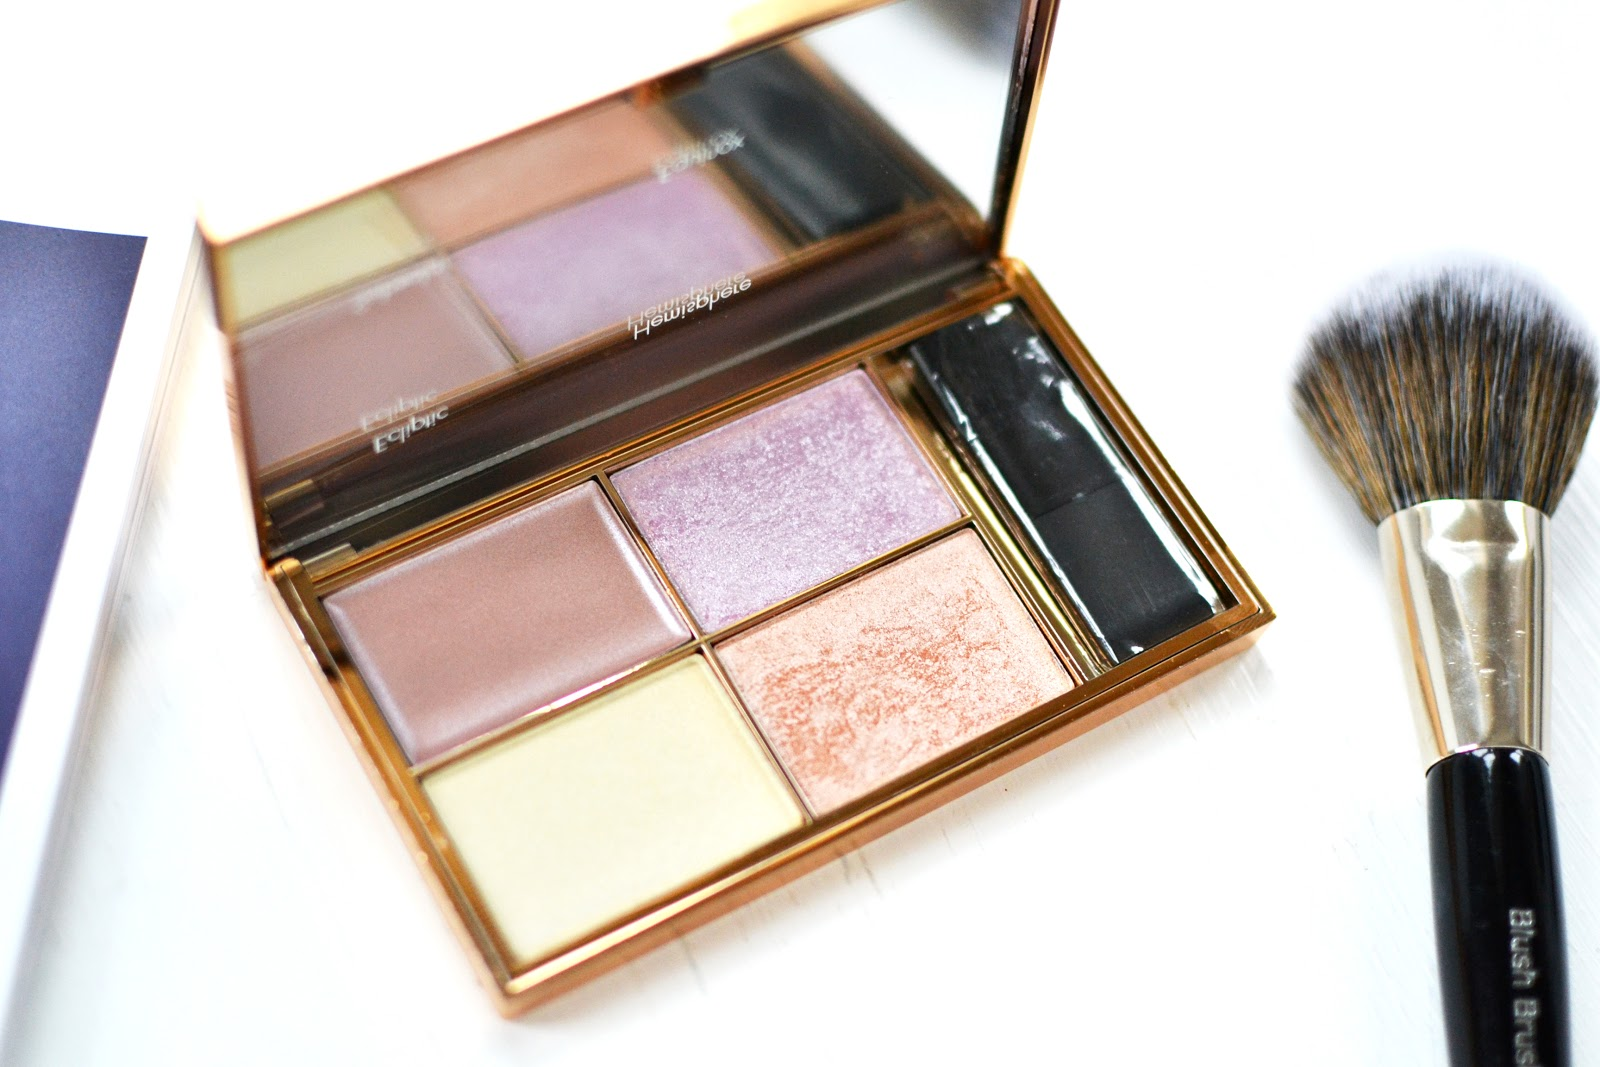 Sleek MakeUP Highlighting Palette in Solstice